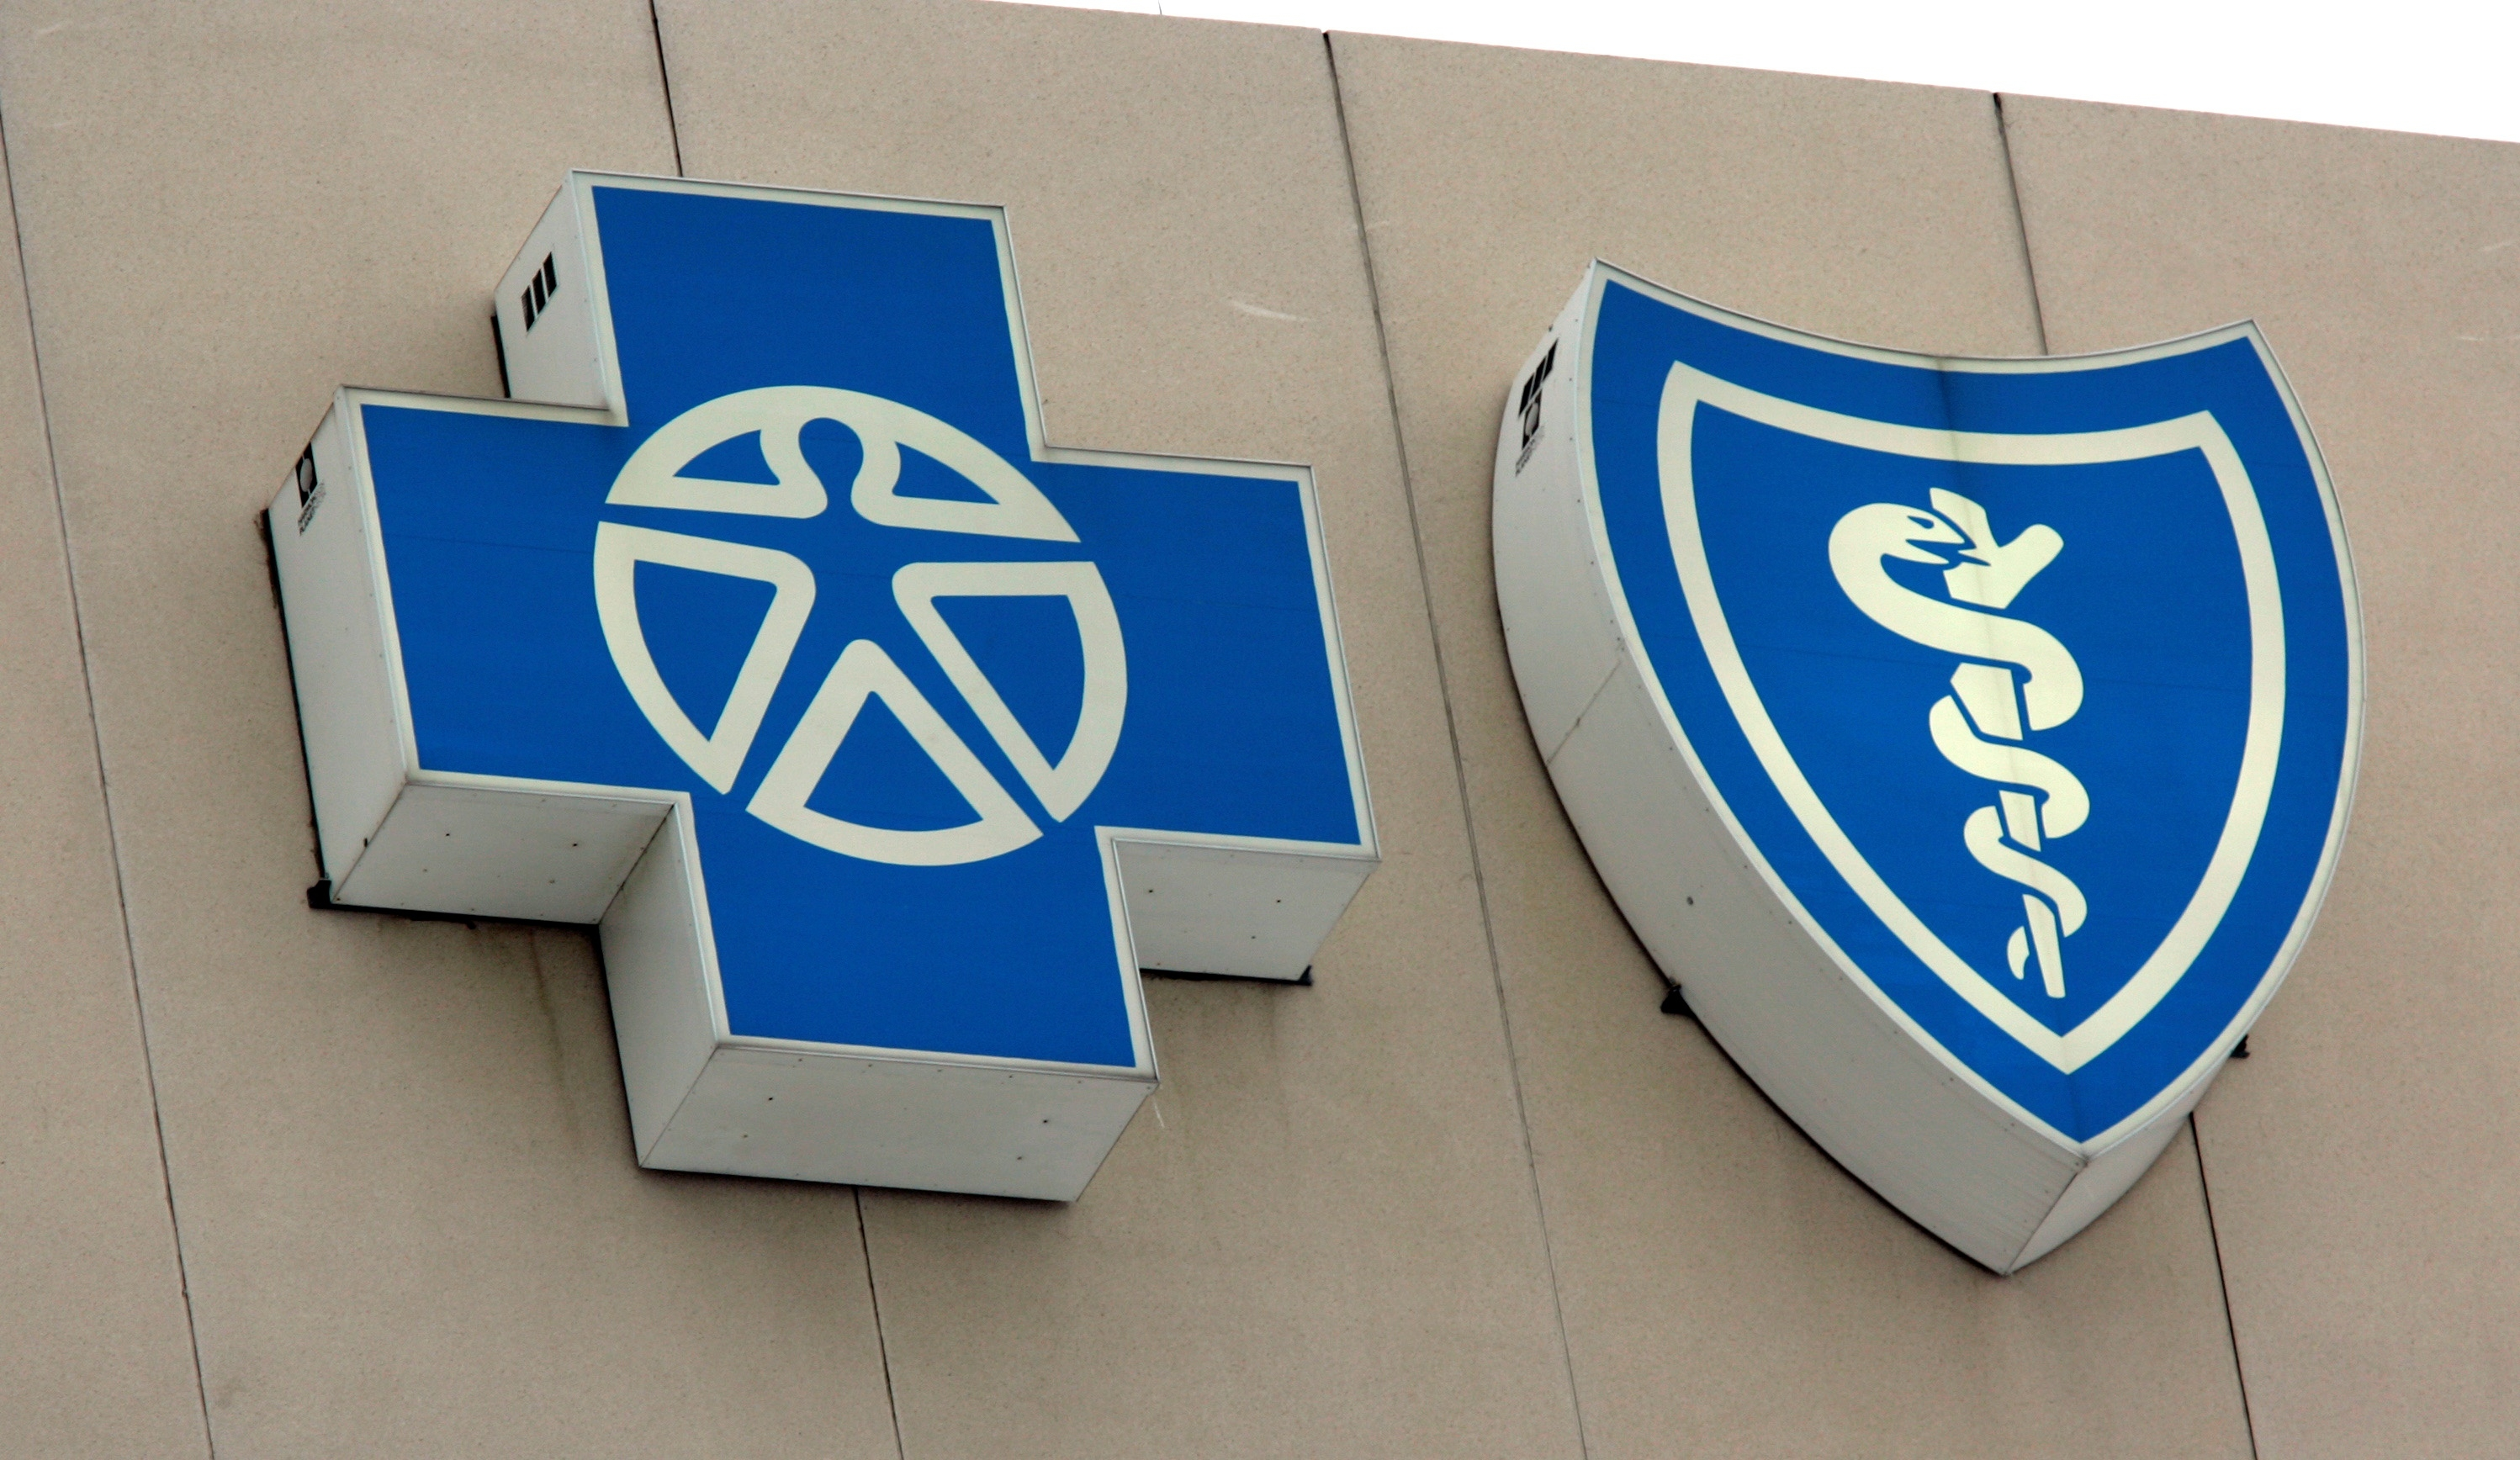 Amid backlash, Blue Cross scales back rate cuts for autism treatment